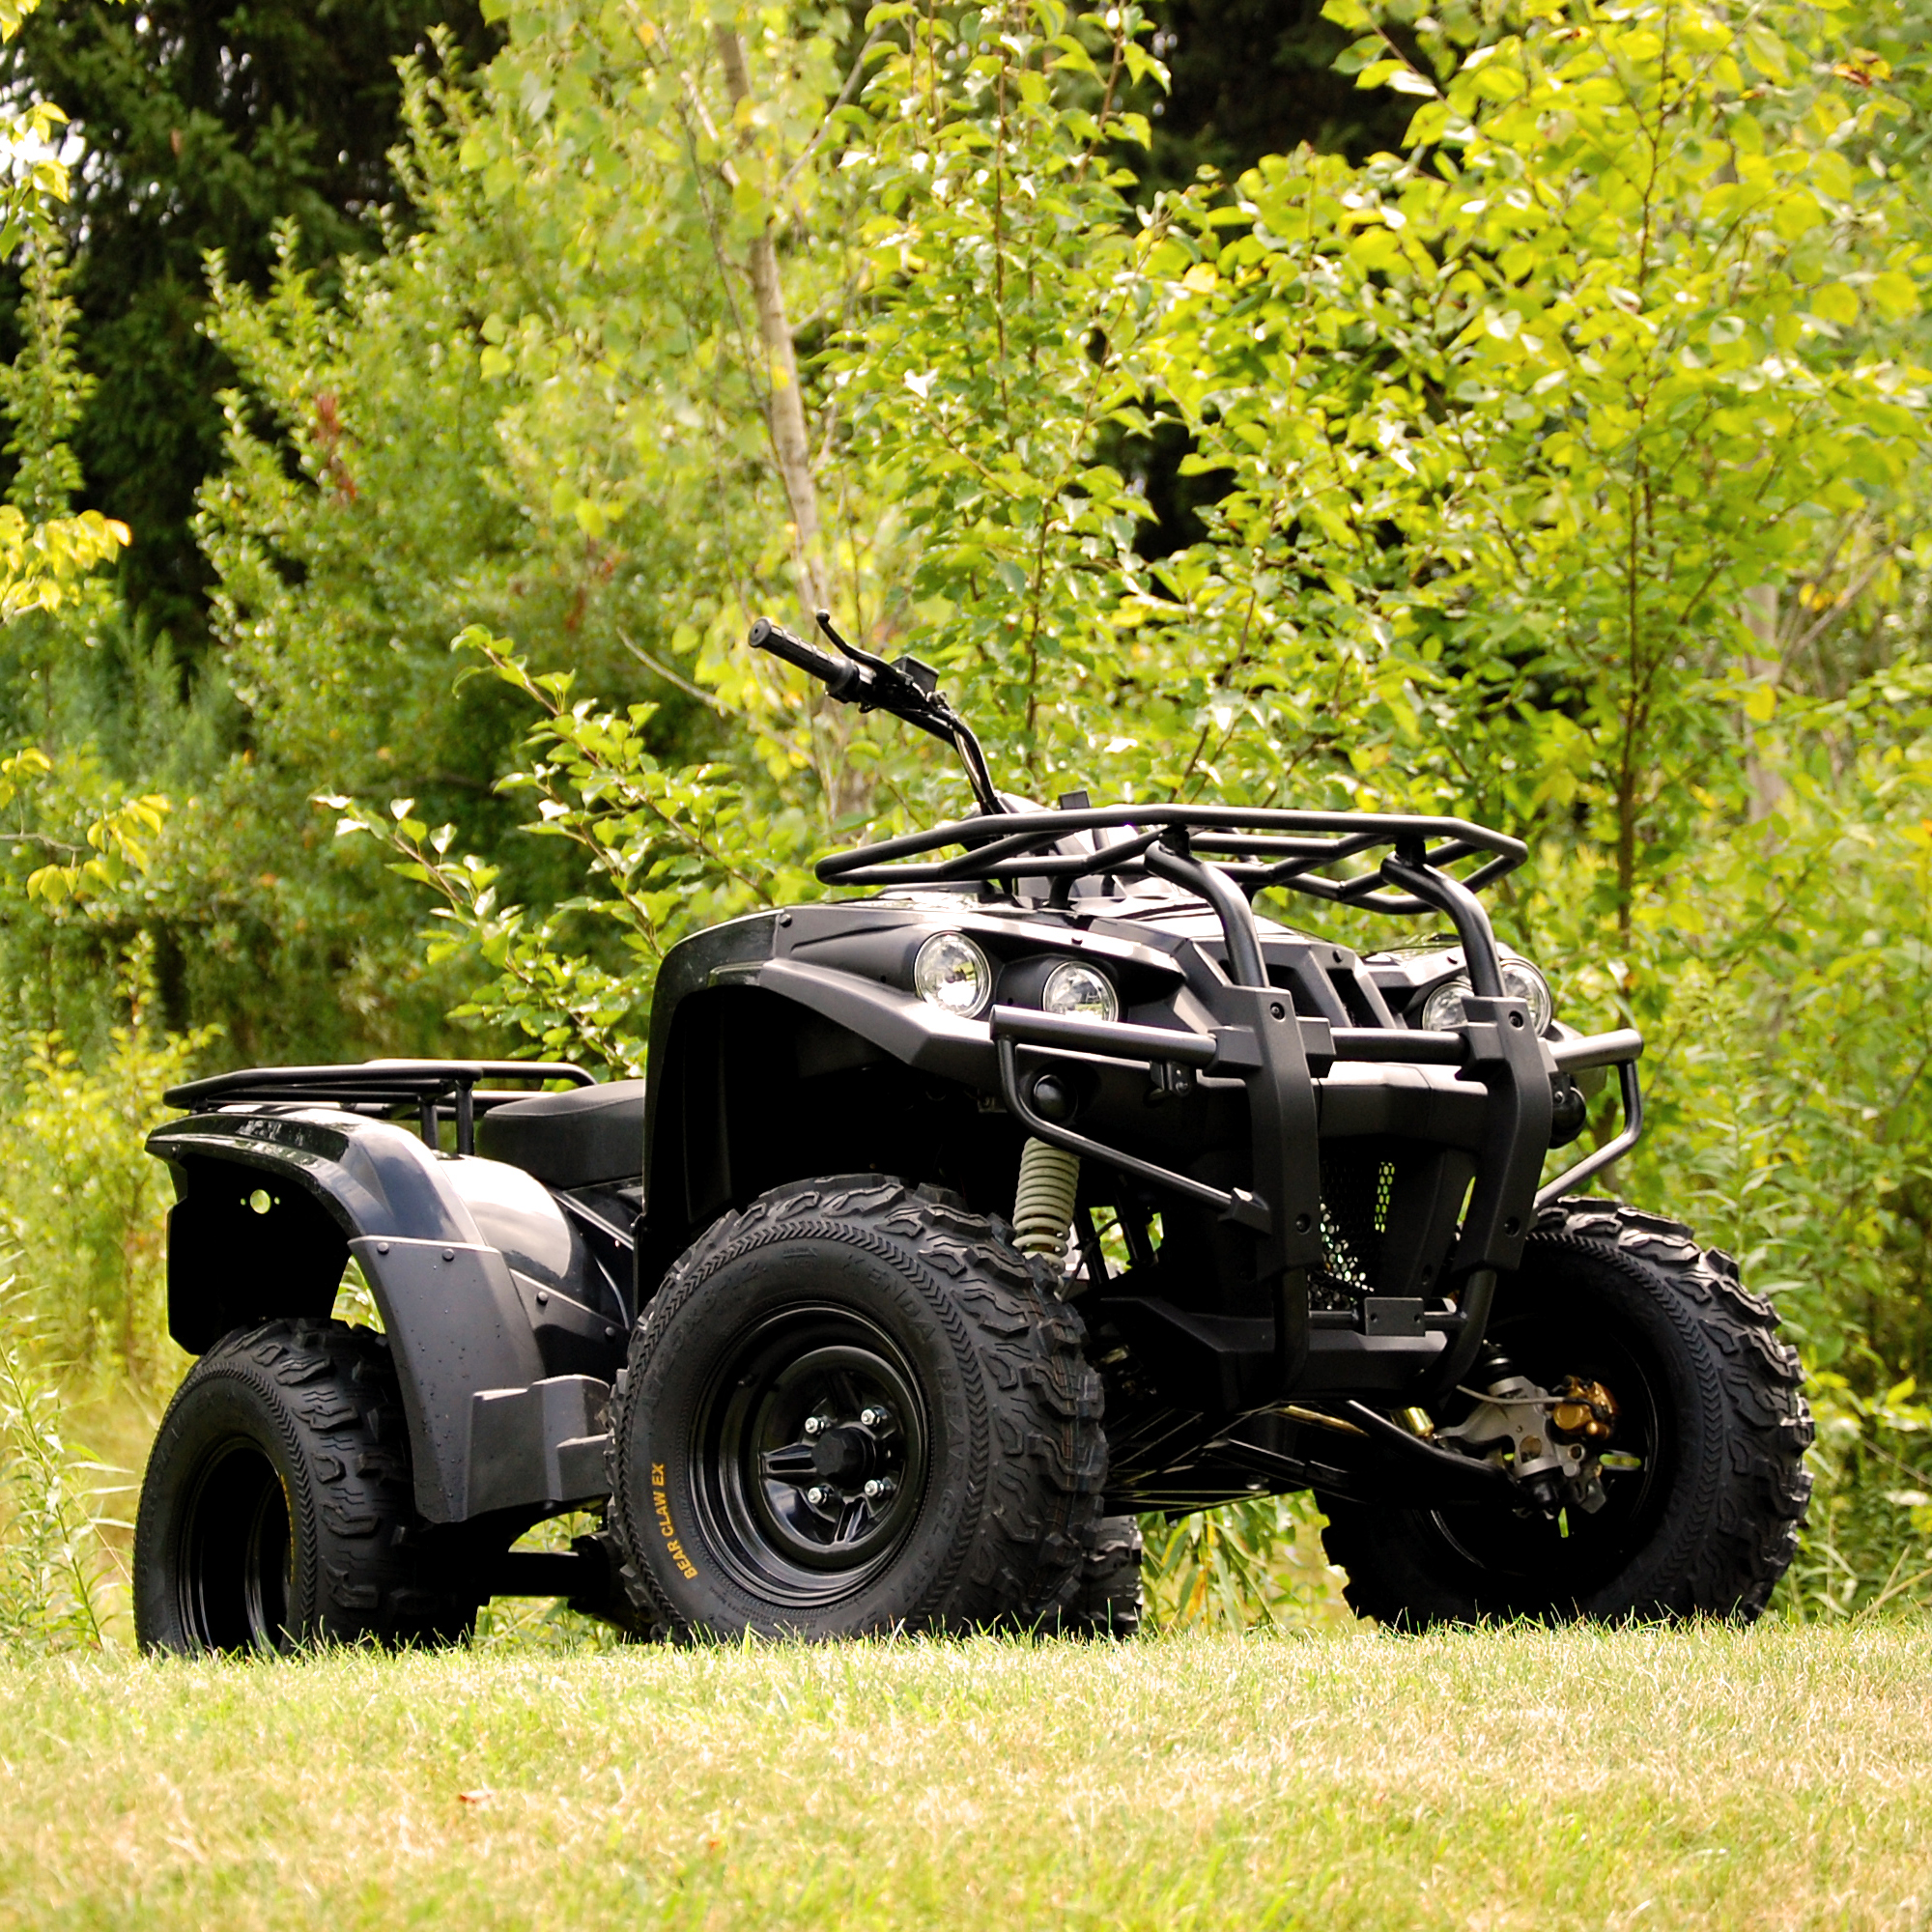 DRR USA Stealth Electric ATV No Rider Environmentally Friendly in Nature.jpg